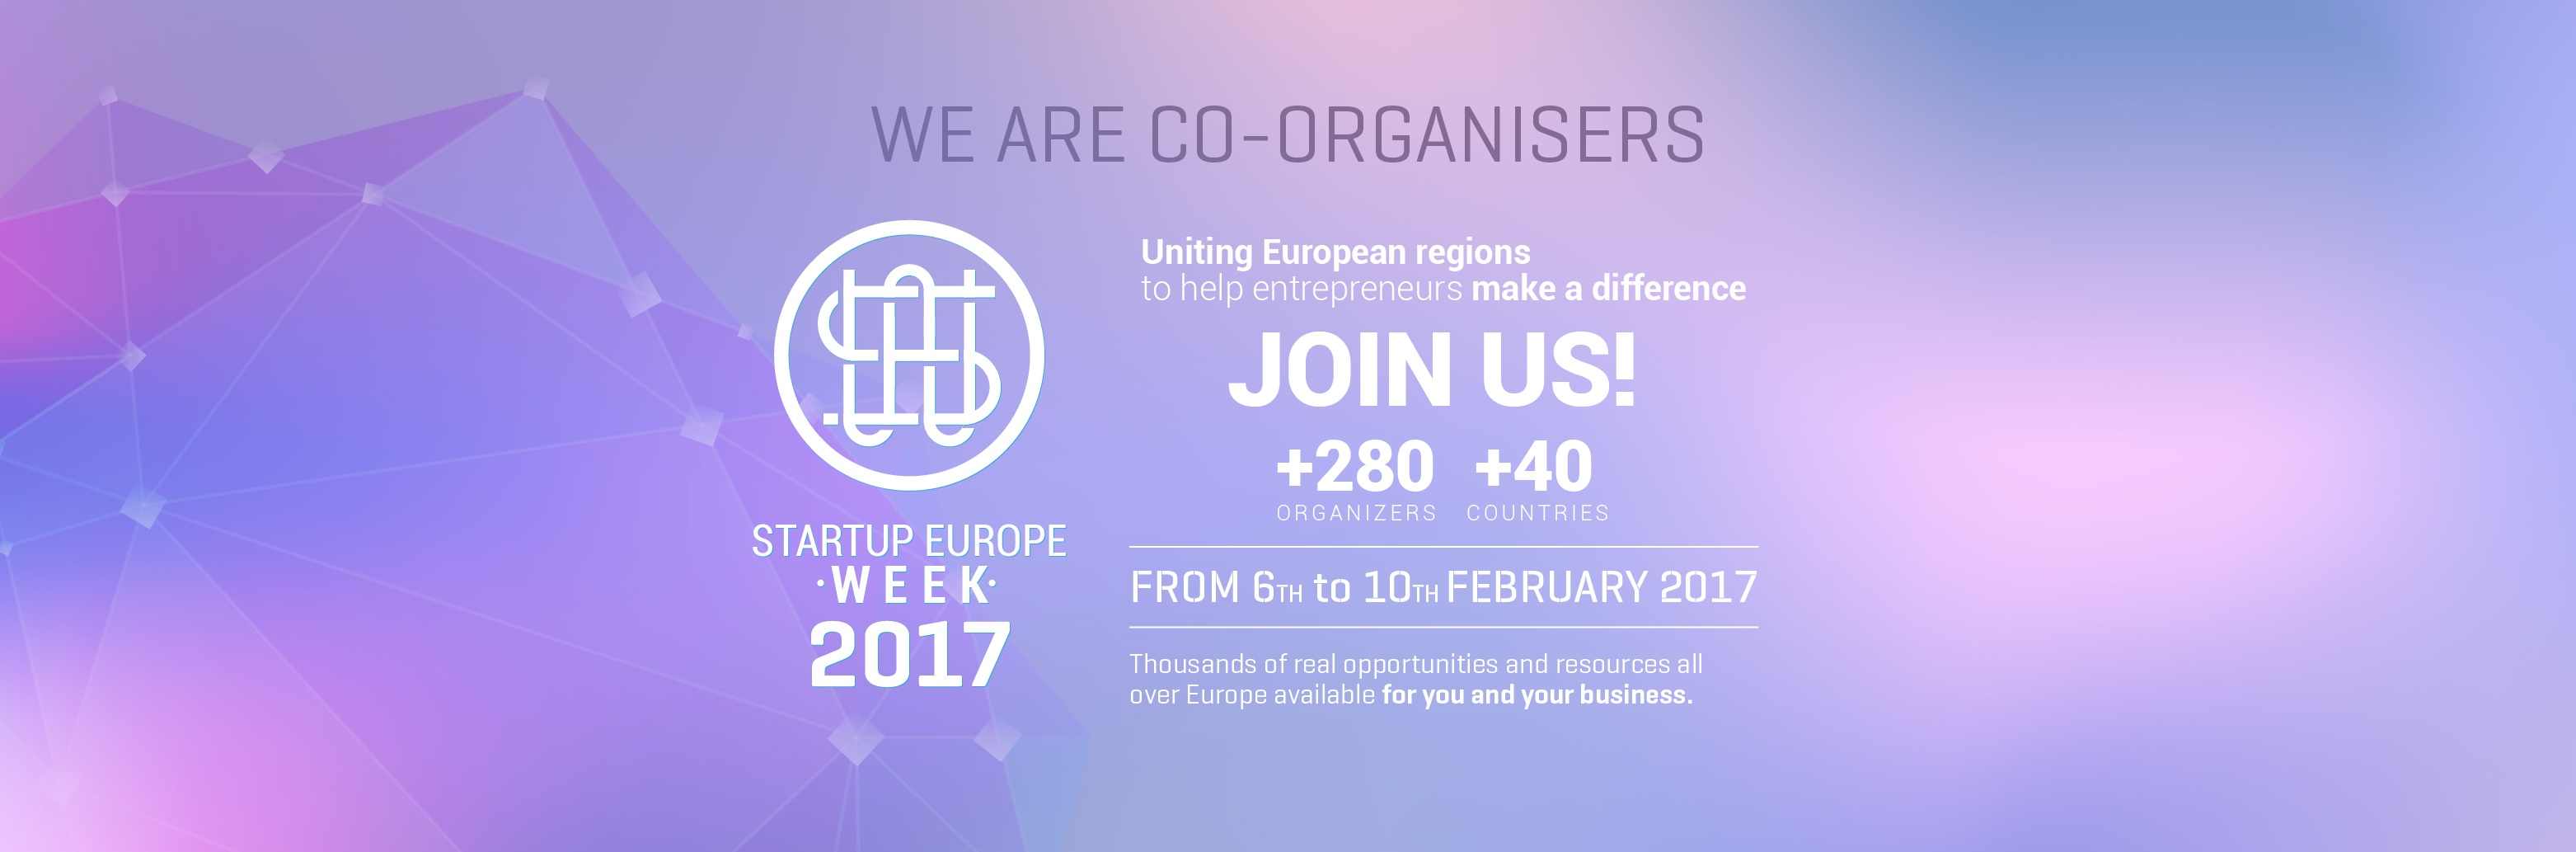 SS_WEEK_2017_organizers_twitter_cover